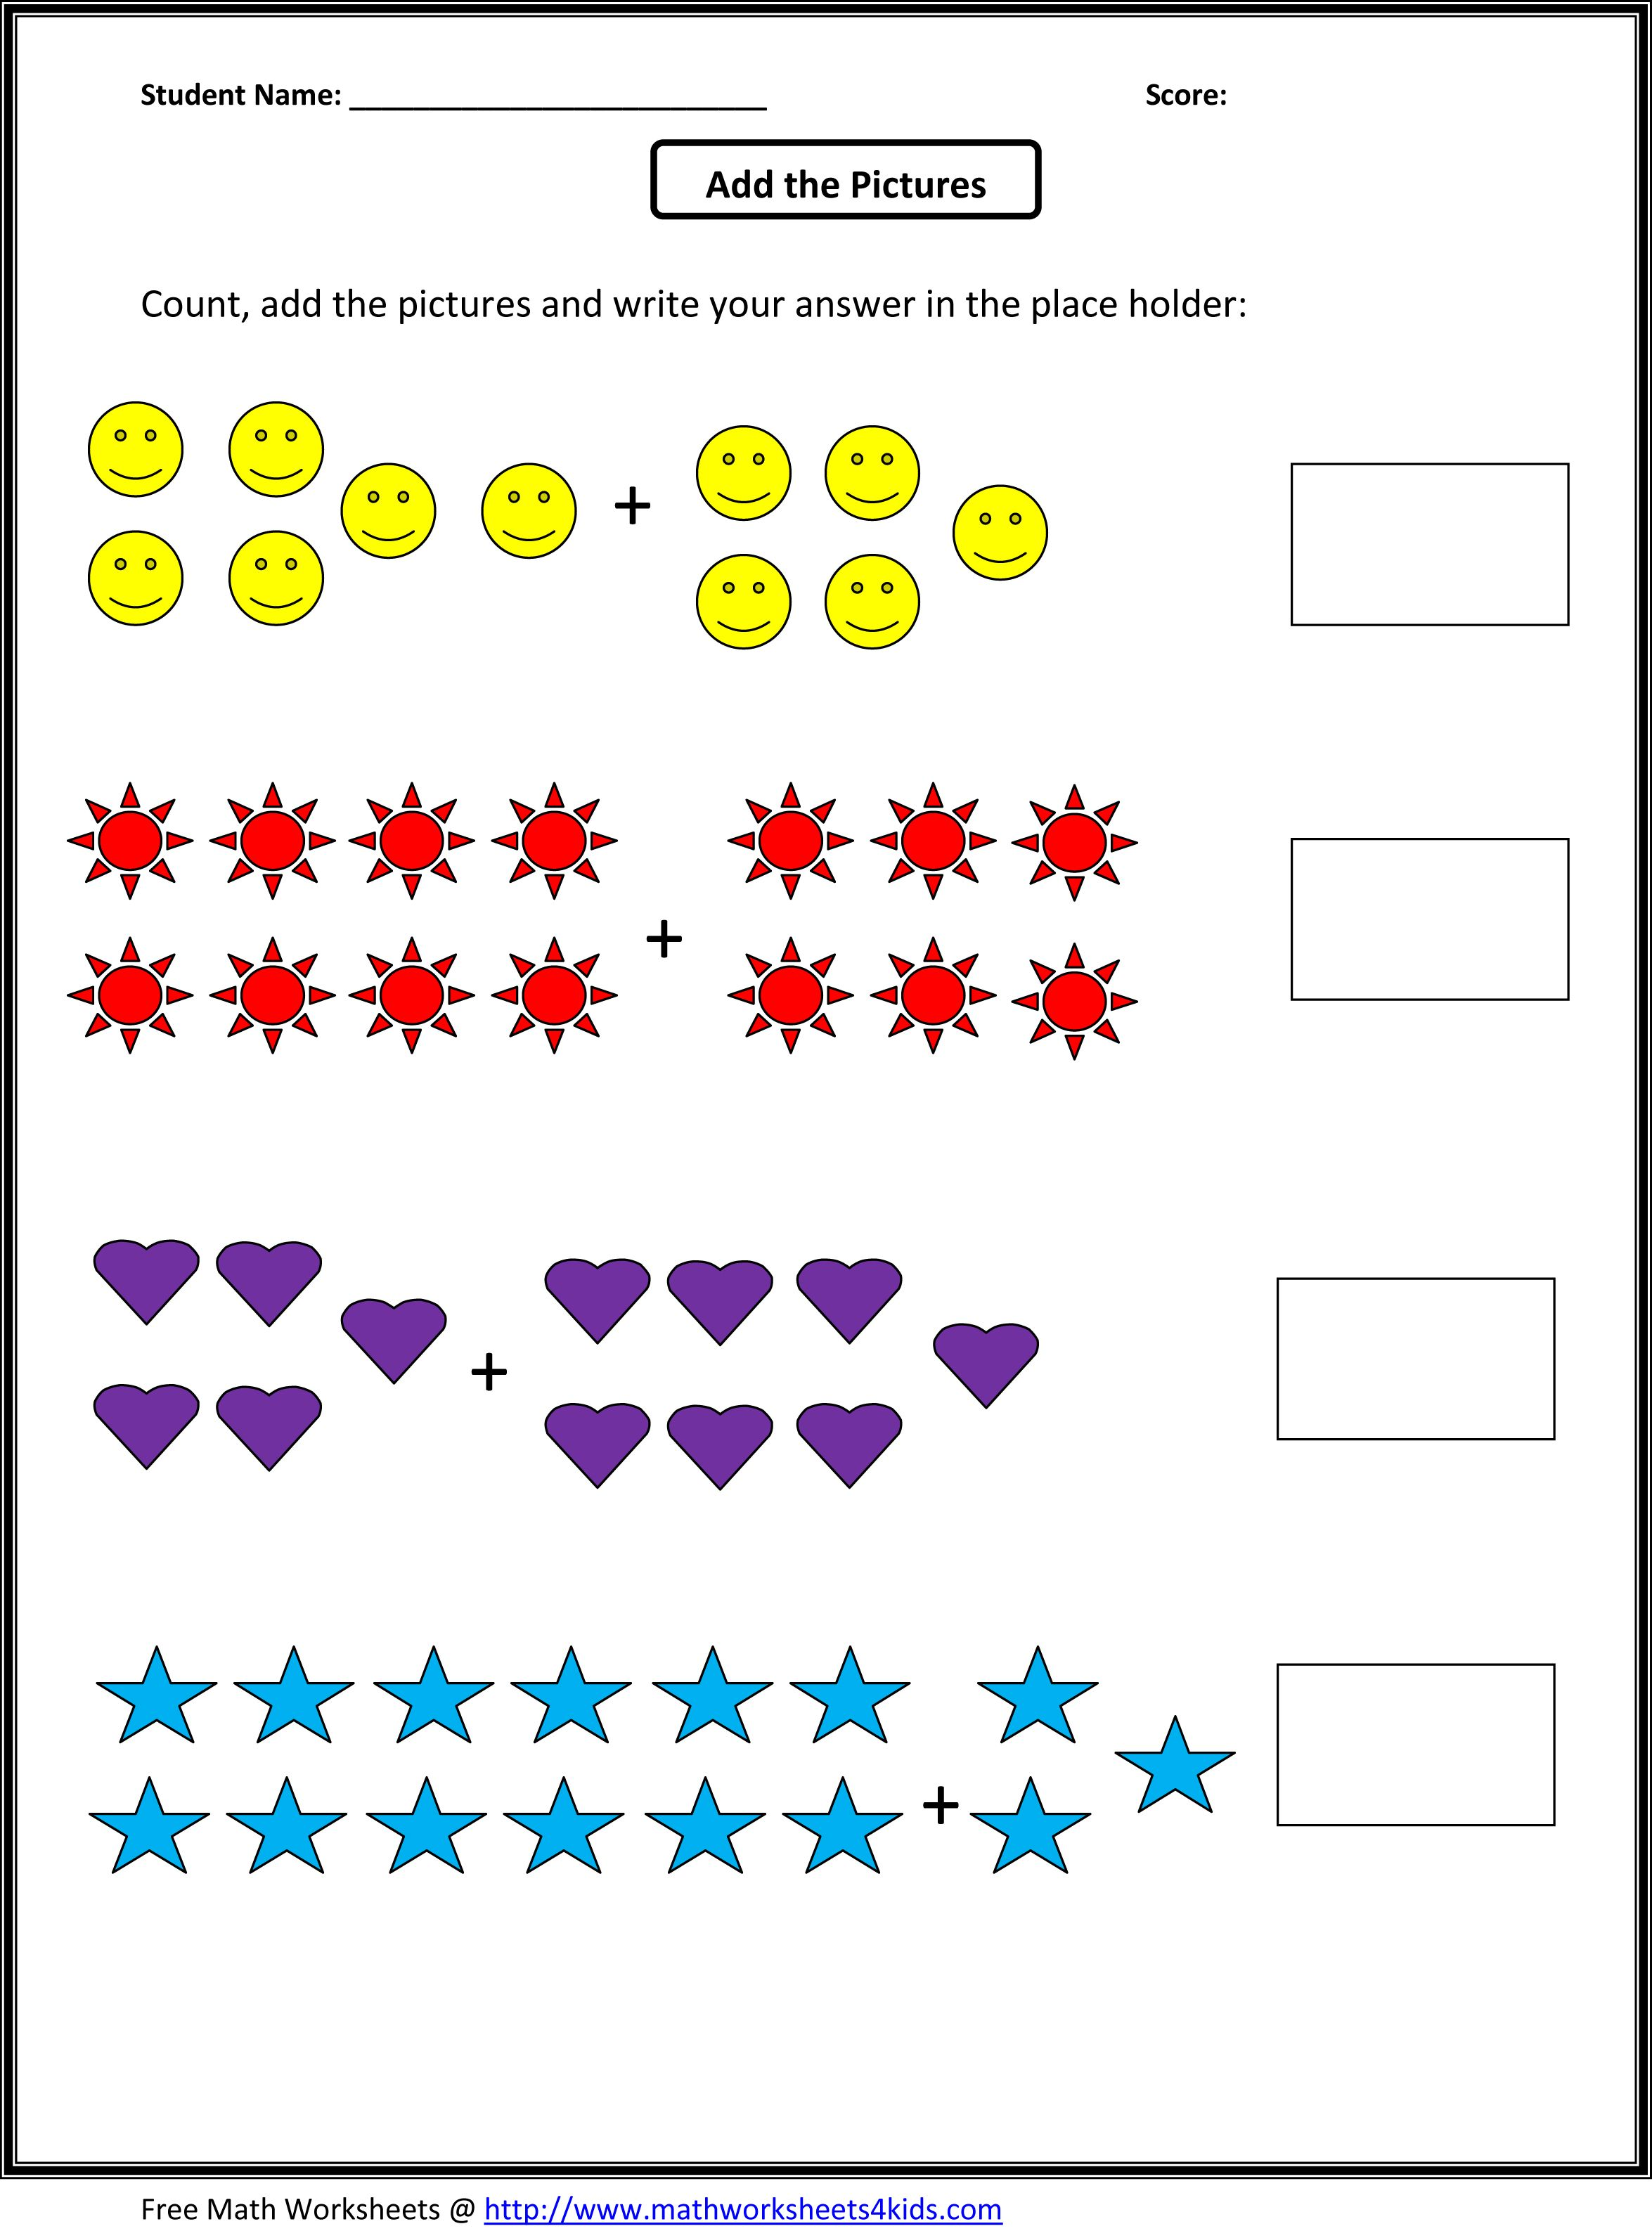 Aldiablosus  Wonderful Worksheet For Math Grade   Coffemix With Lovely  Images About School On Pinterest  Mental Maths Worksheets  With Enchanting Free Math Worksheets For Nd Graders Also Weather Worksheets Middle School In Addition Telling Time To The Minute Worksheet And Capitalization Worksheets Free As Well As Seven Sacraments Worksheet Additionally  Steps Of Recovery Worksheets From Coffemixcom With Aldiablosus  Lovely Worksheet For Math Grade   Coffemix With Enchanting  Images About School On Pinterest  Mental Maths Worksheets  And Wonderful Free Math Worksheets For Nd Graders Also Weather Worksheets Middle School In Addition Telling Time To The Minute Worksheet From Coffemixcom